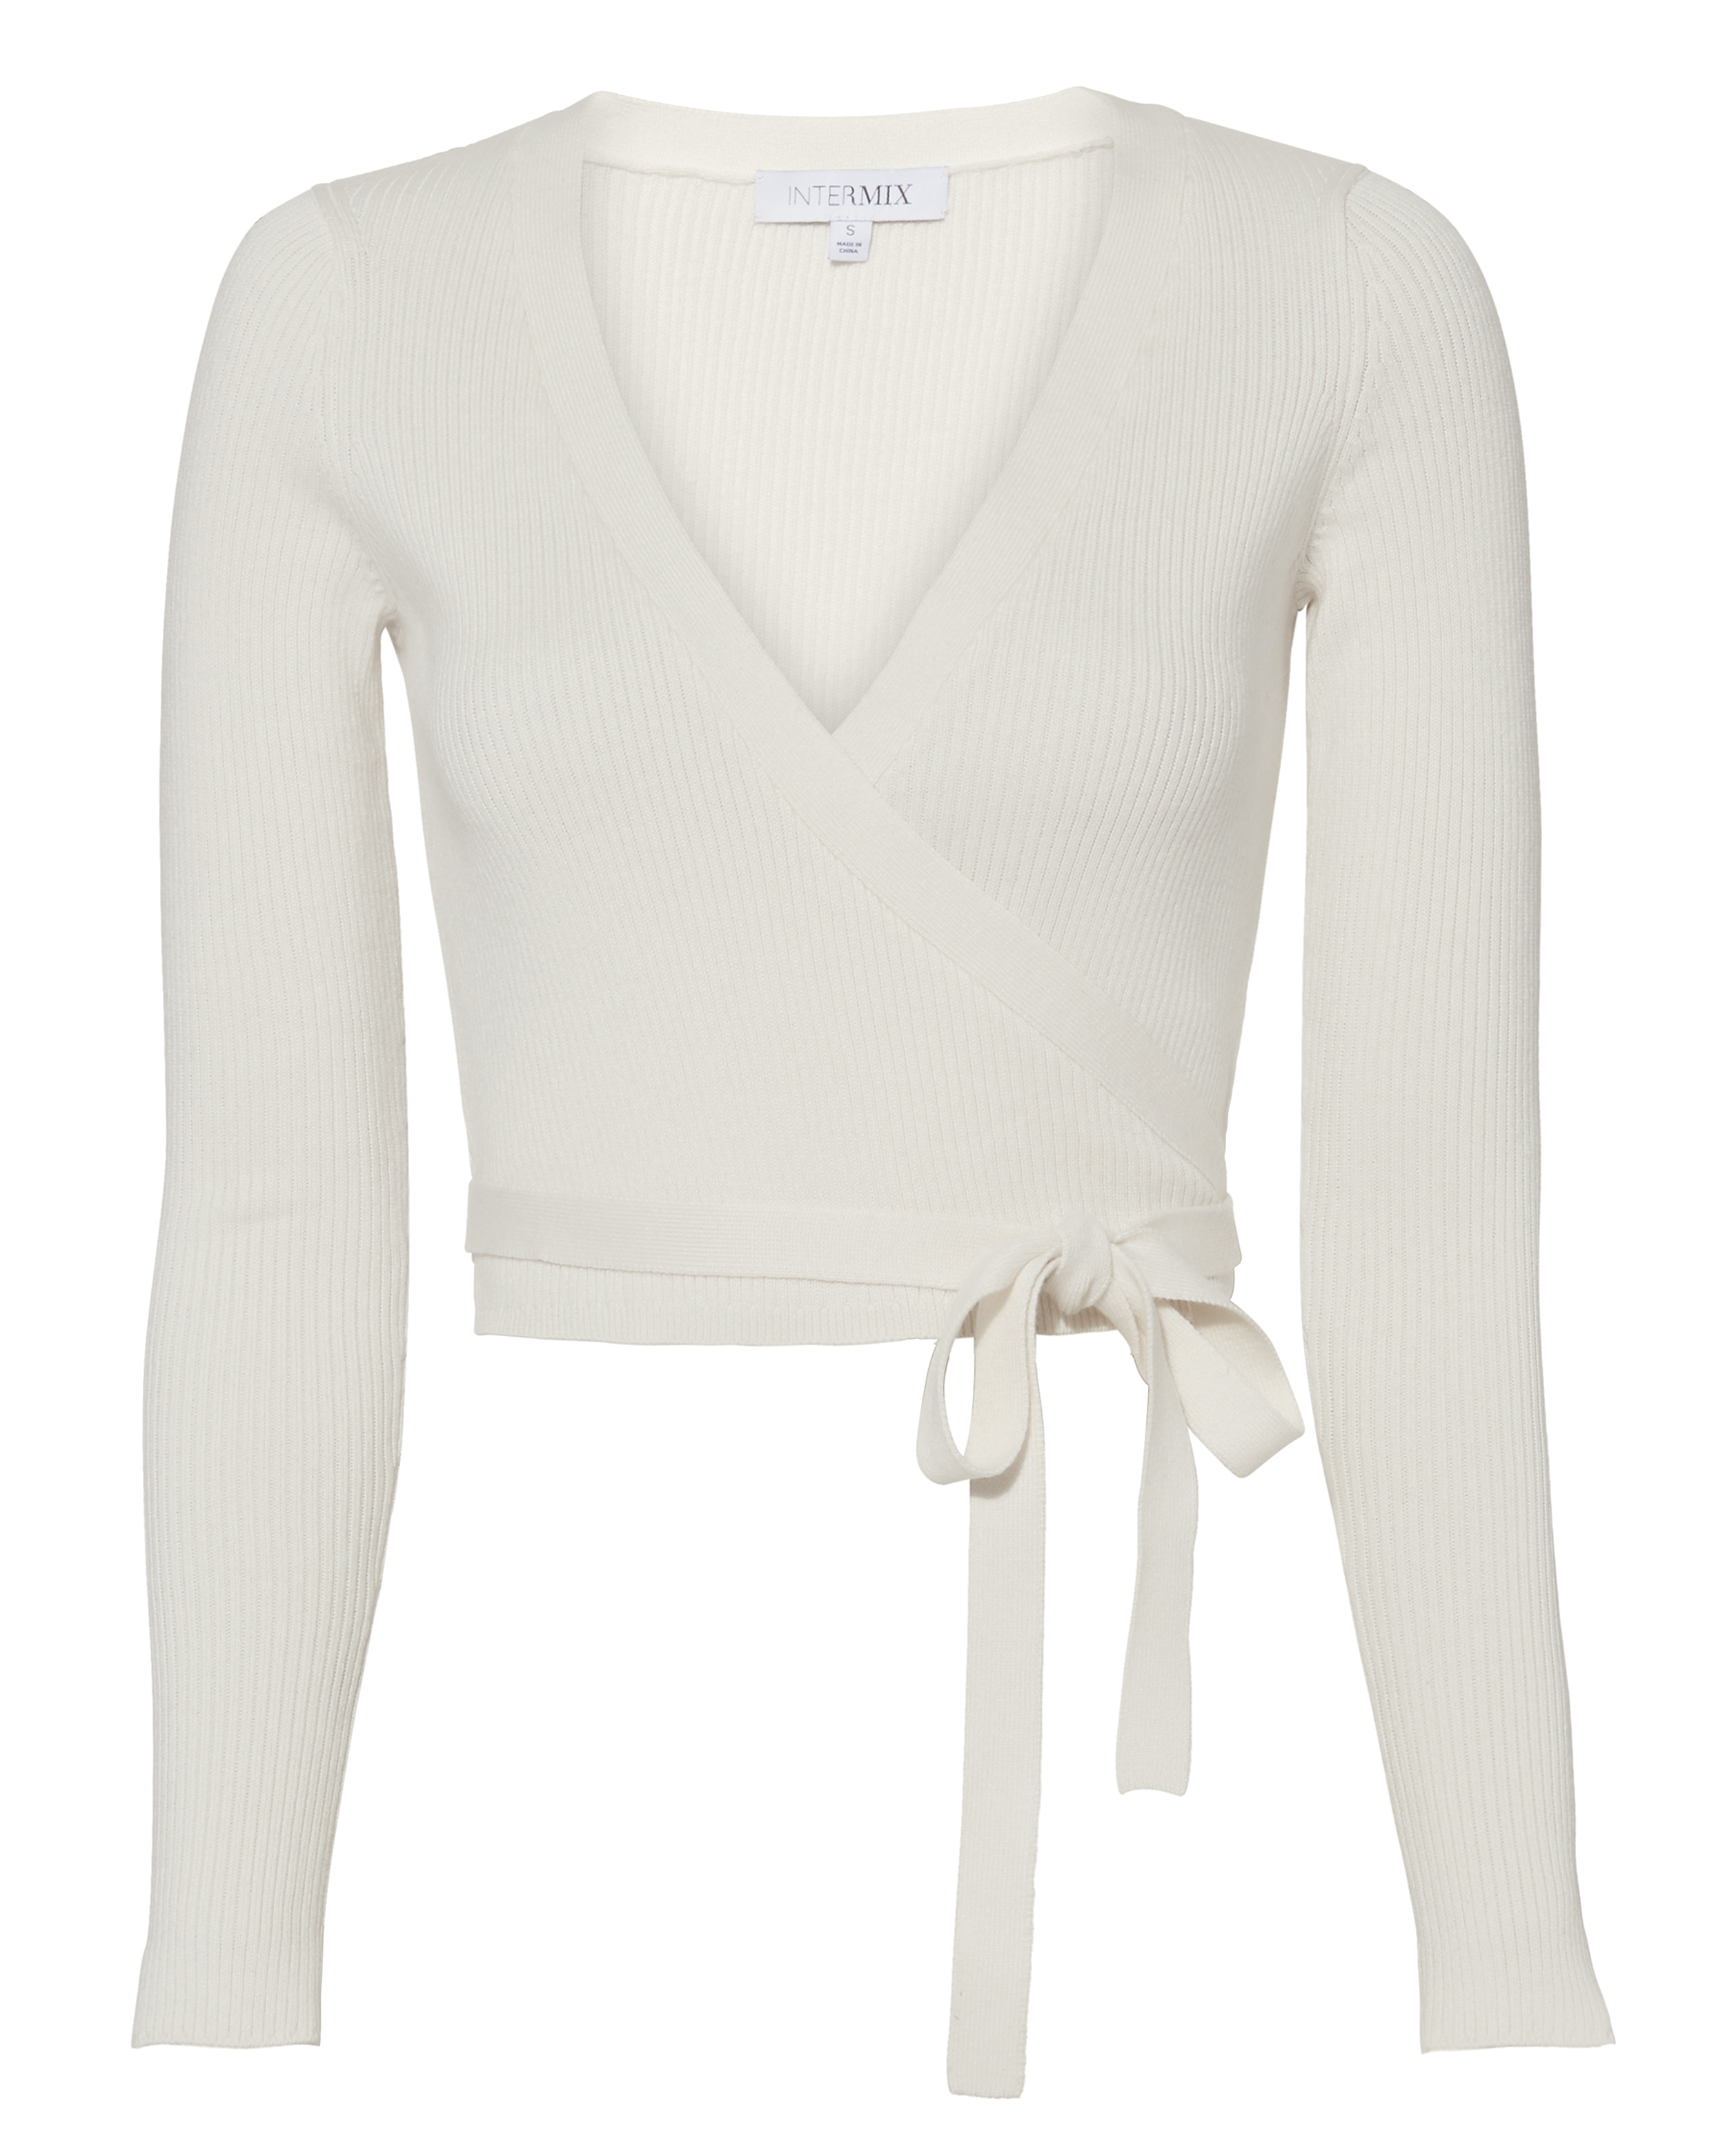 Vanessa Wrap Top by Intermix